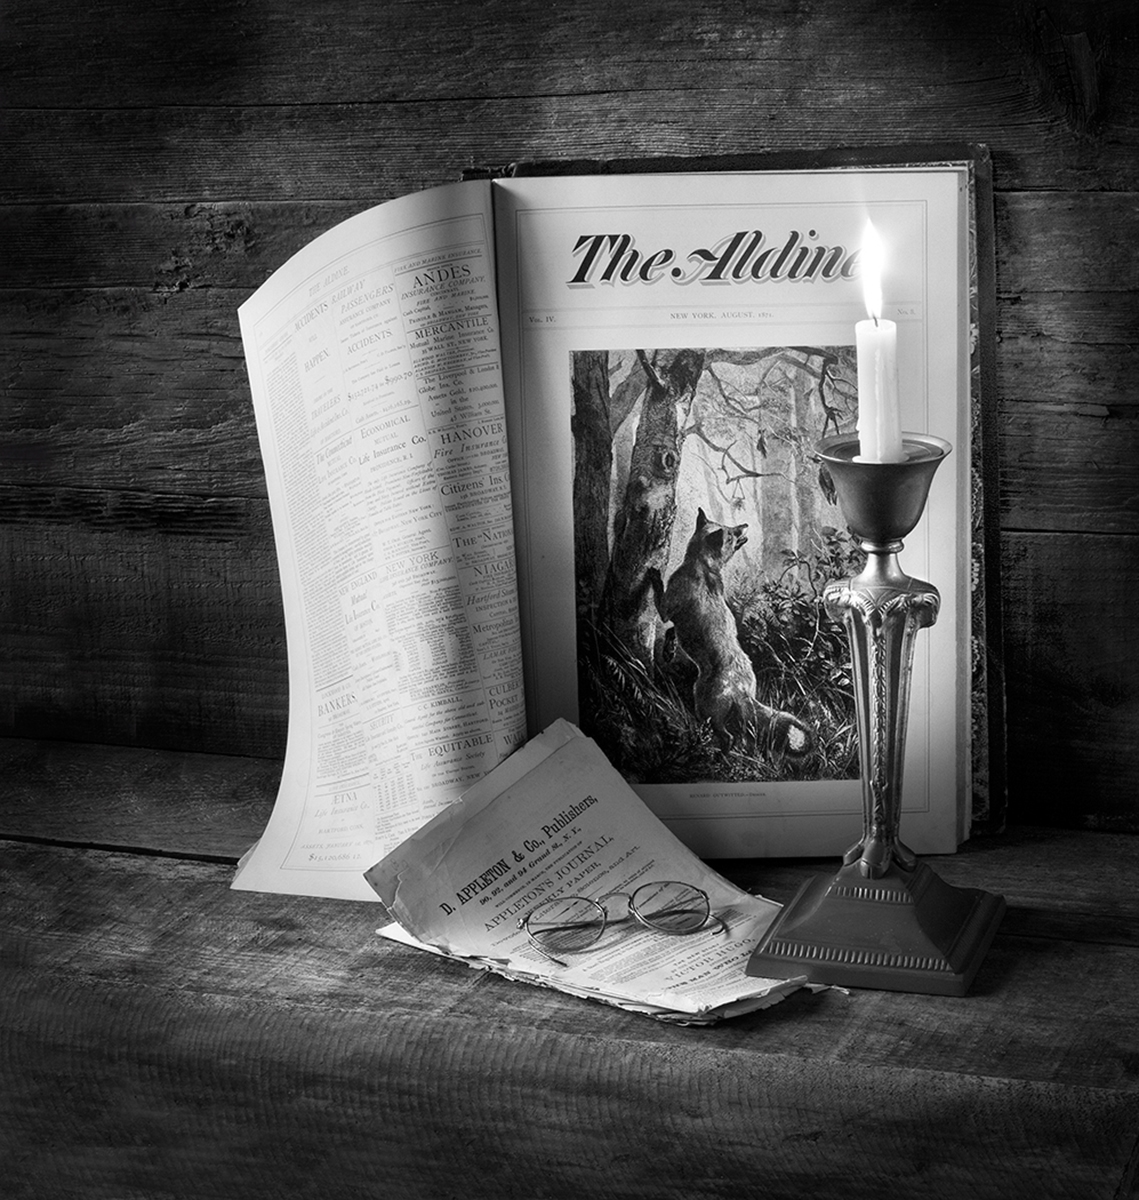 An-Old-Art-Book-By-Candlelight-MM-Best-in-Show-by-Claudia-Peterson-LS